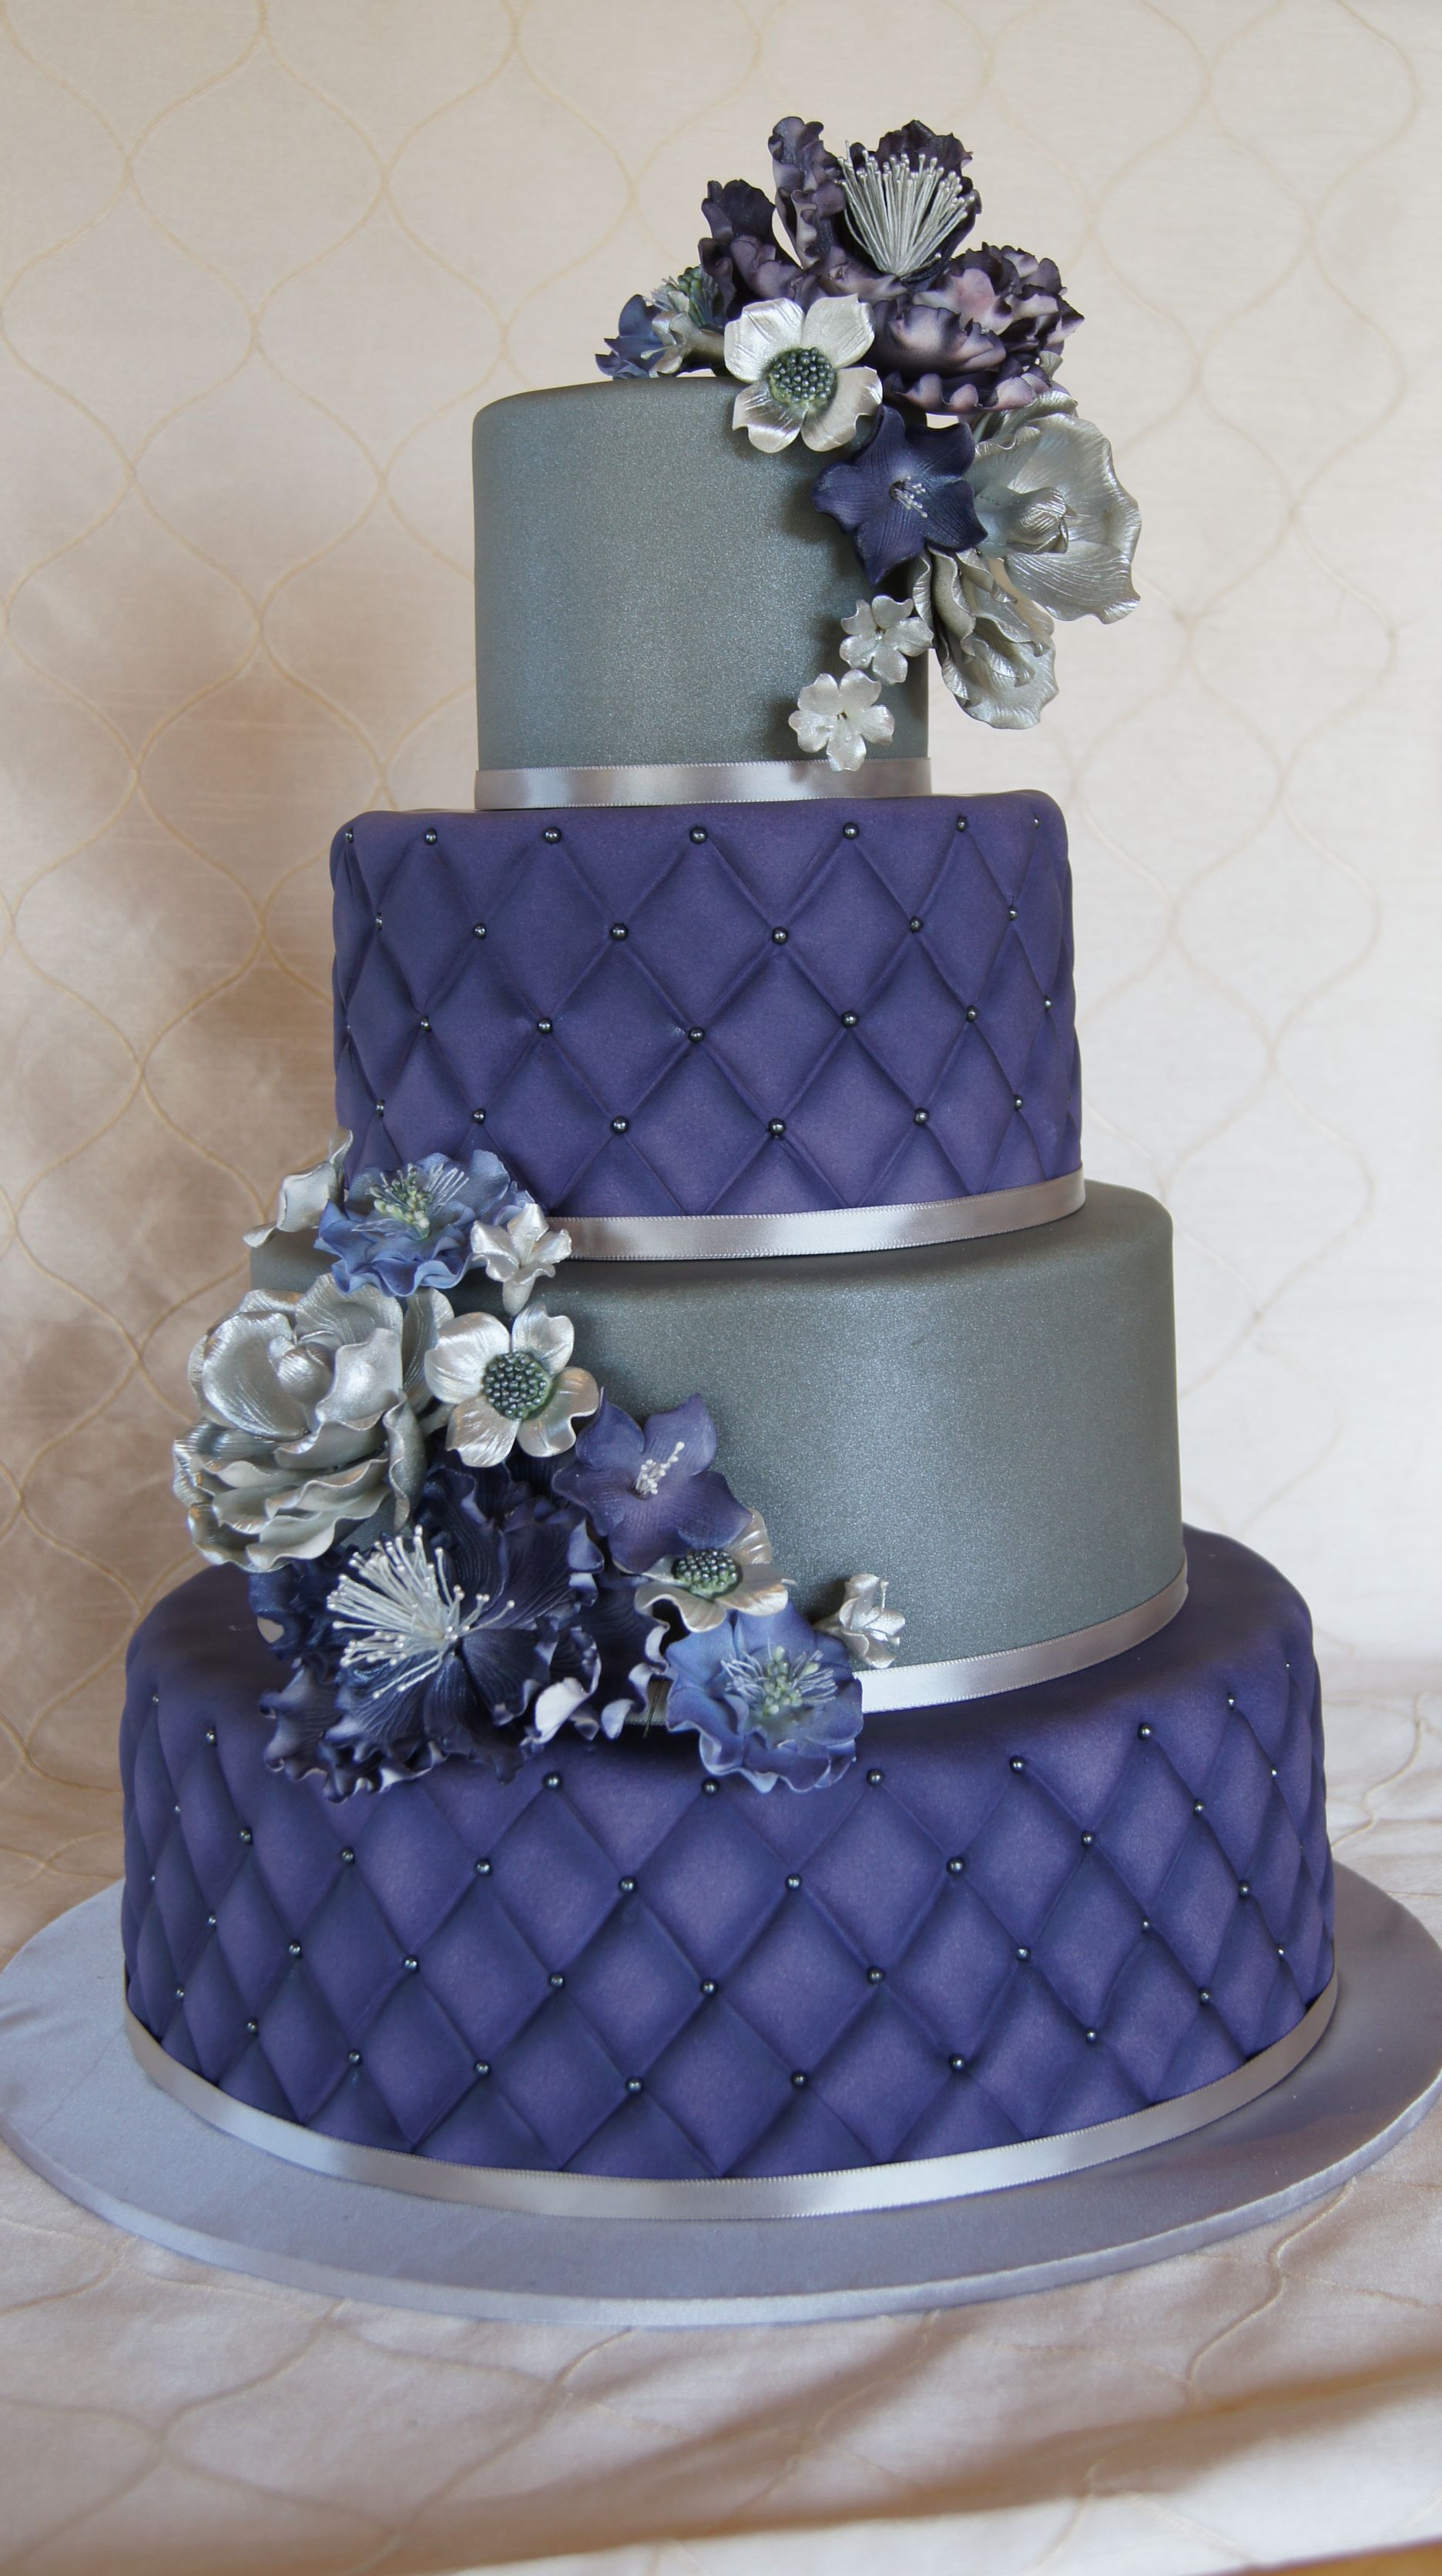 Tiered Purple And Silver Wedding Cake With Quilted Design And